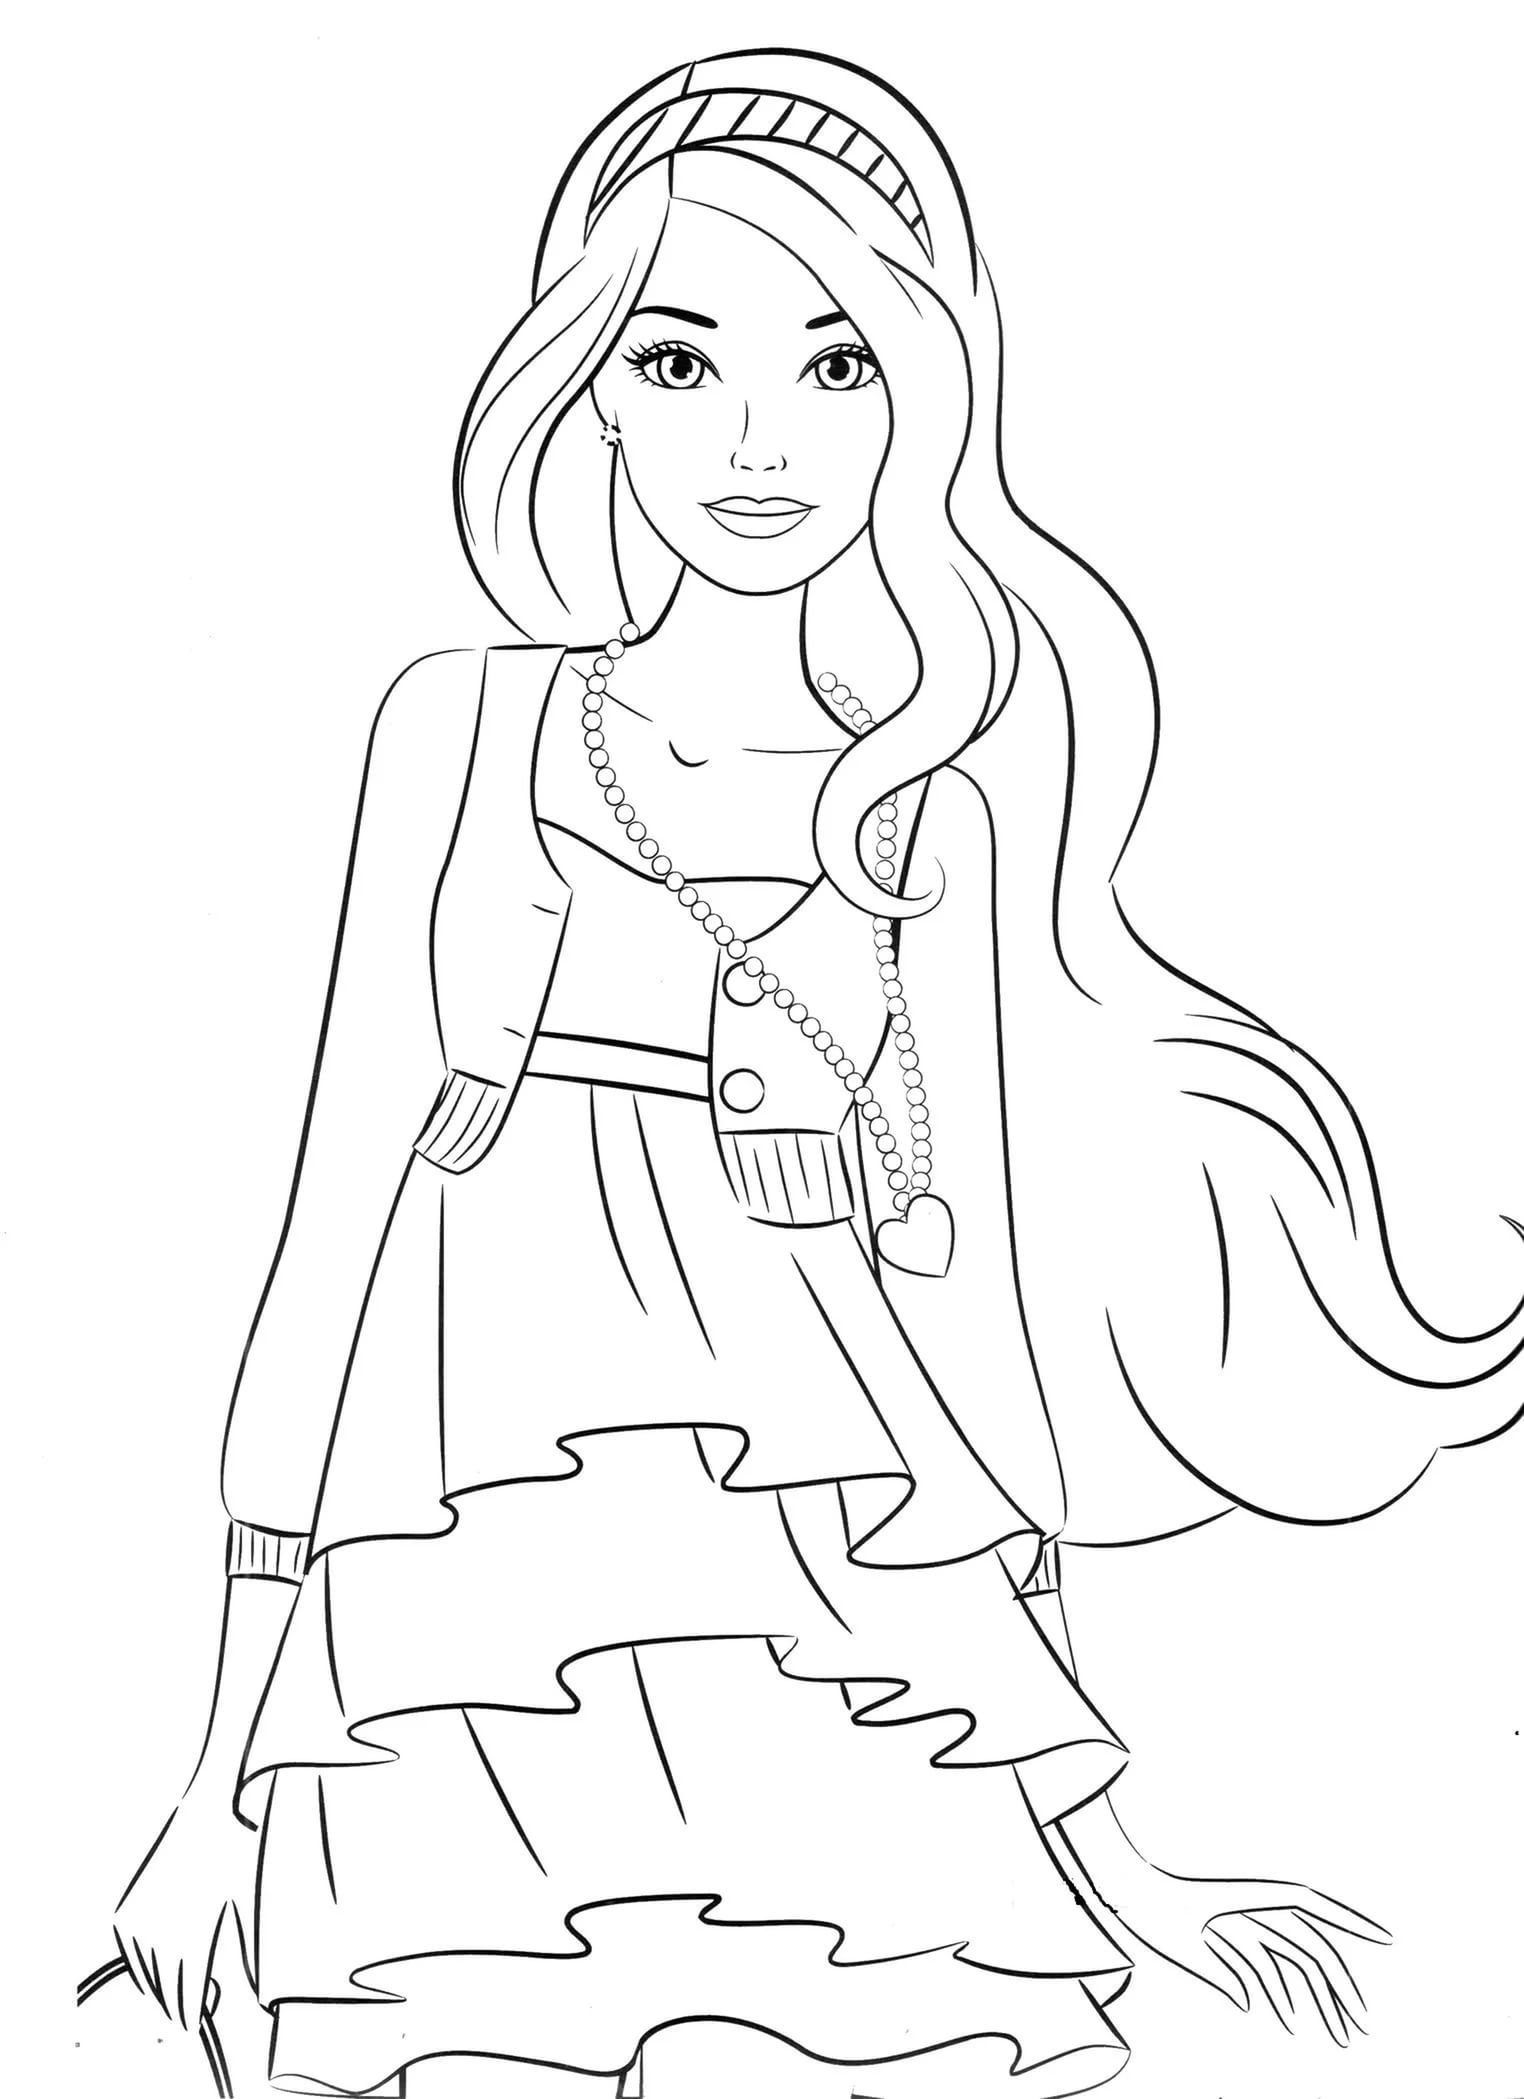 Printable Coloring Pages For 9 Year Olds With Images Barbie